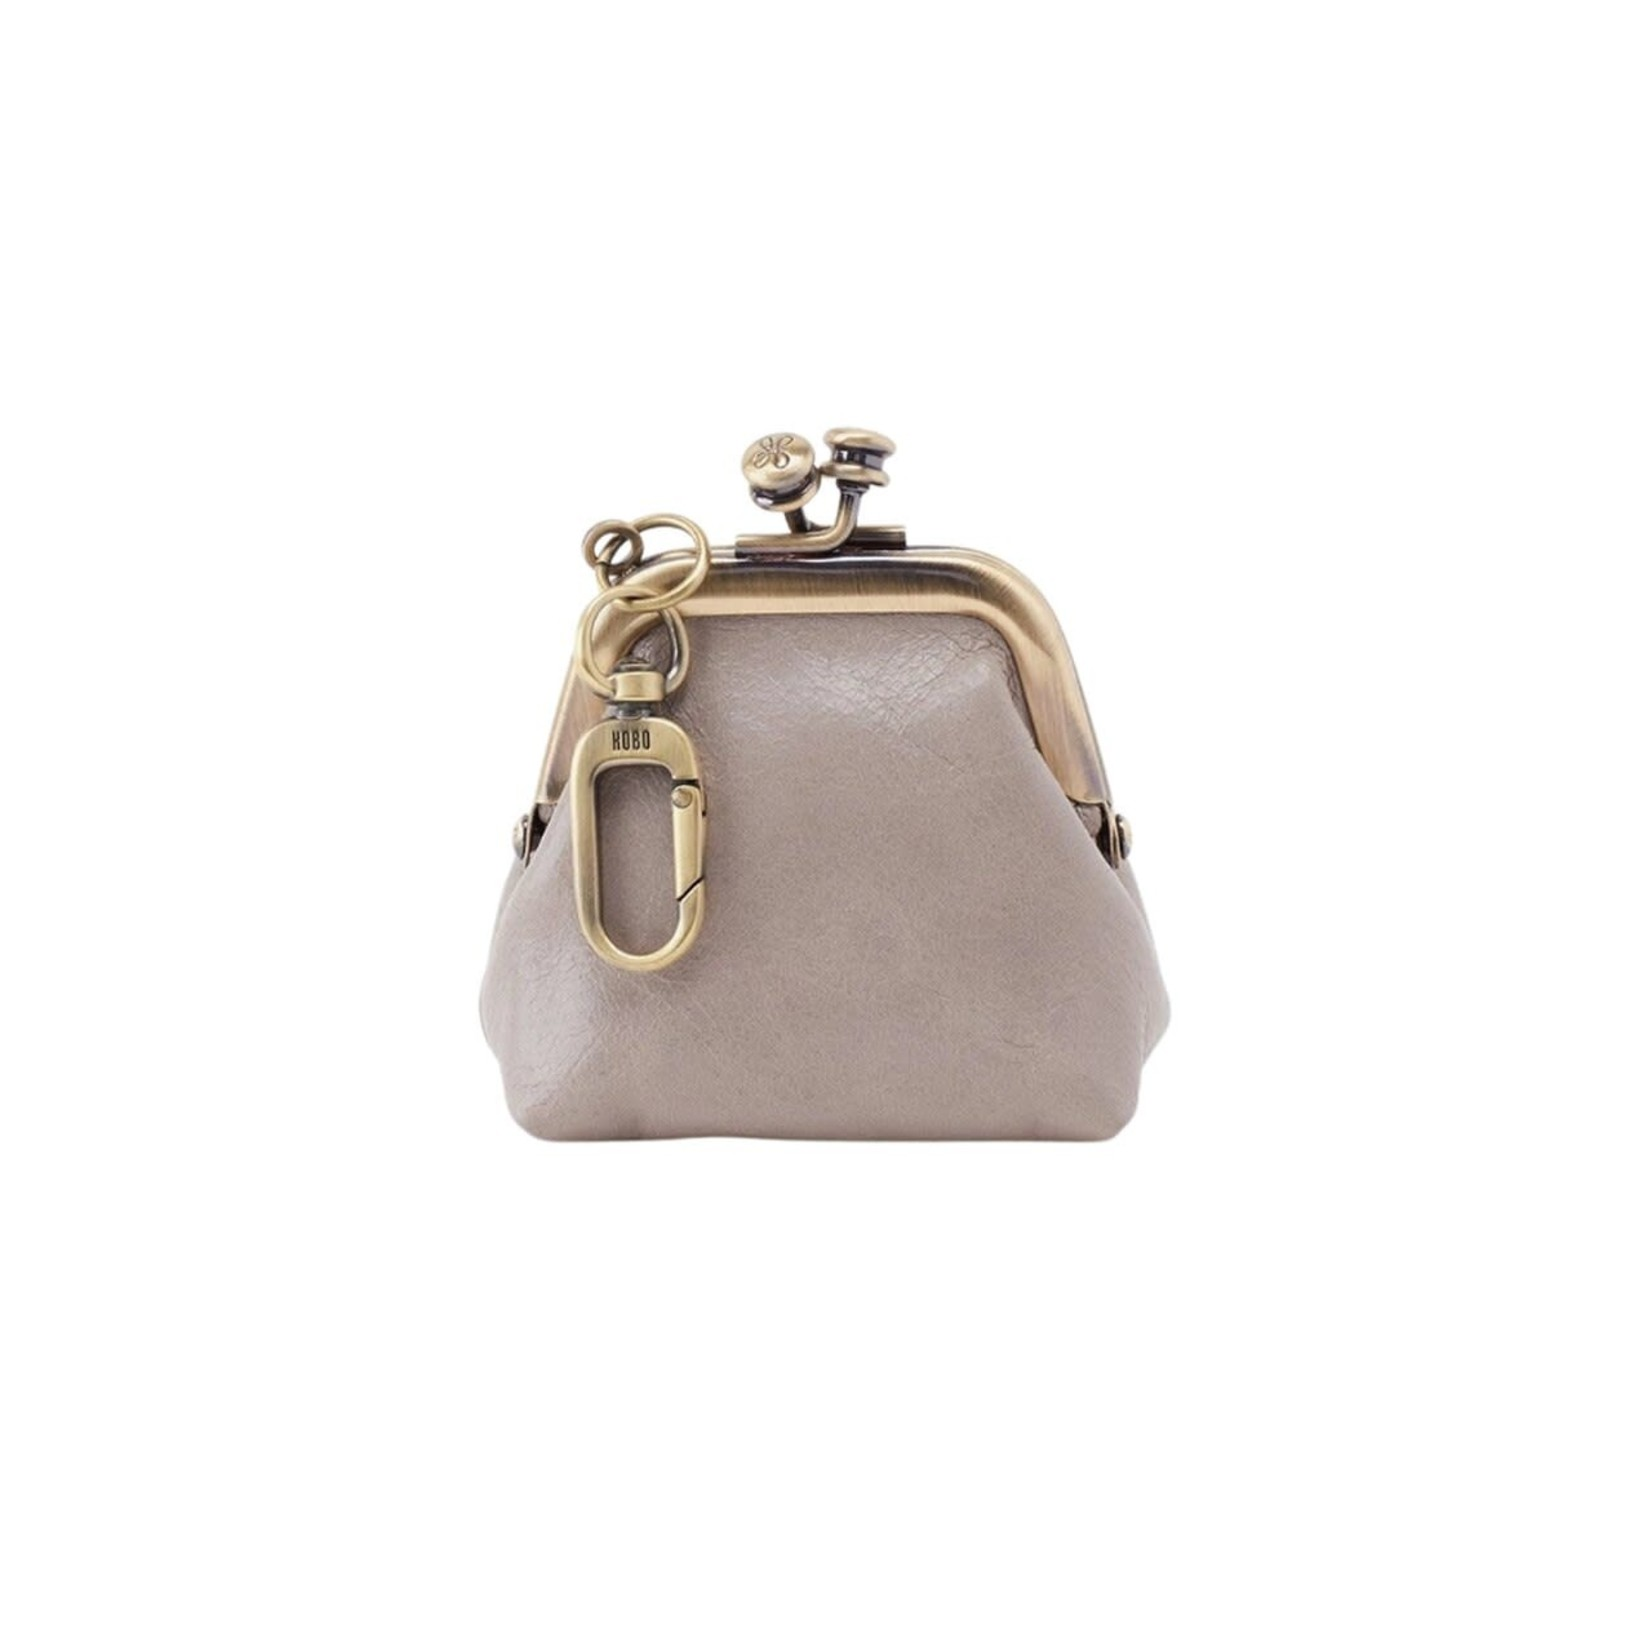 HOBO Run Driftwood Vintage Leather Frame Pouch